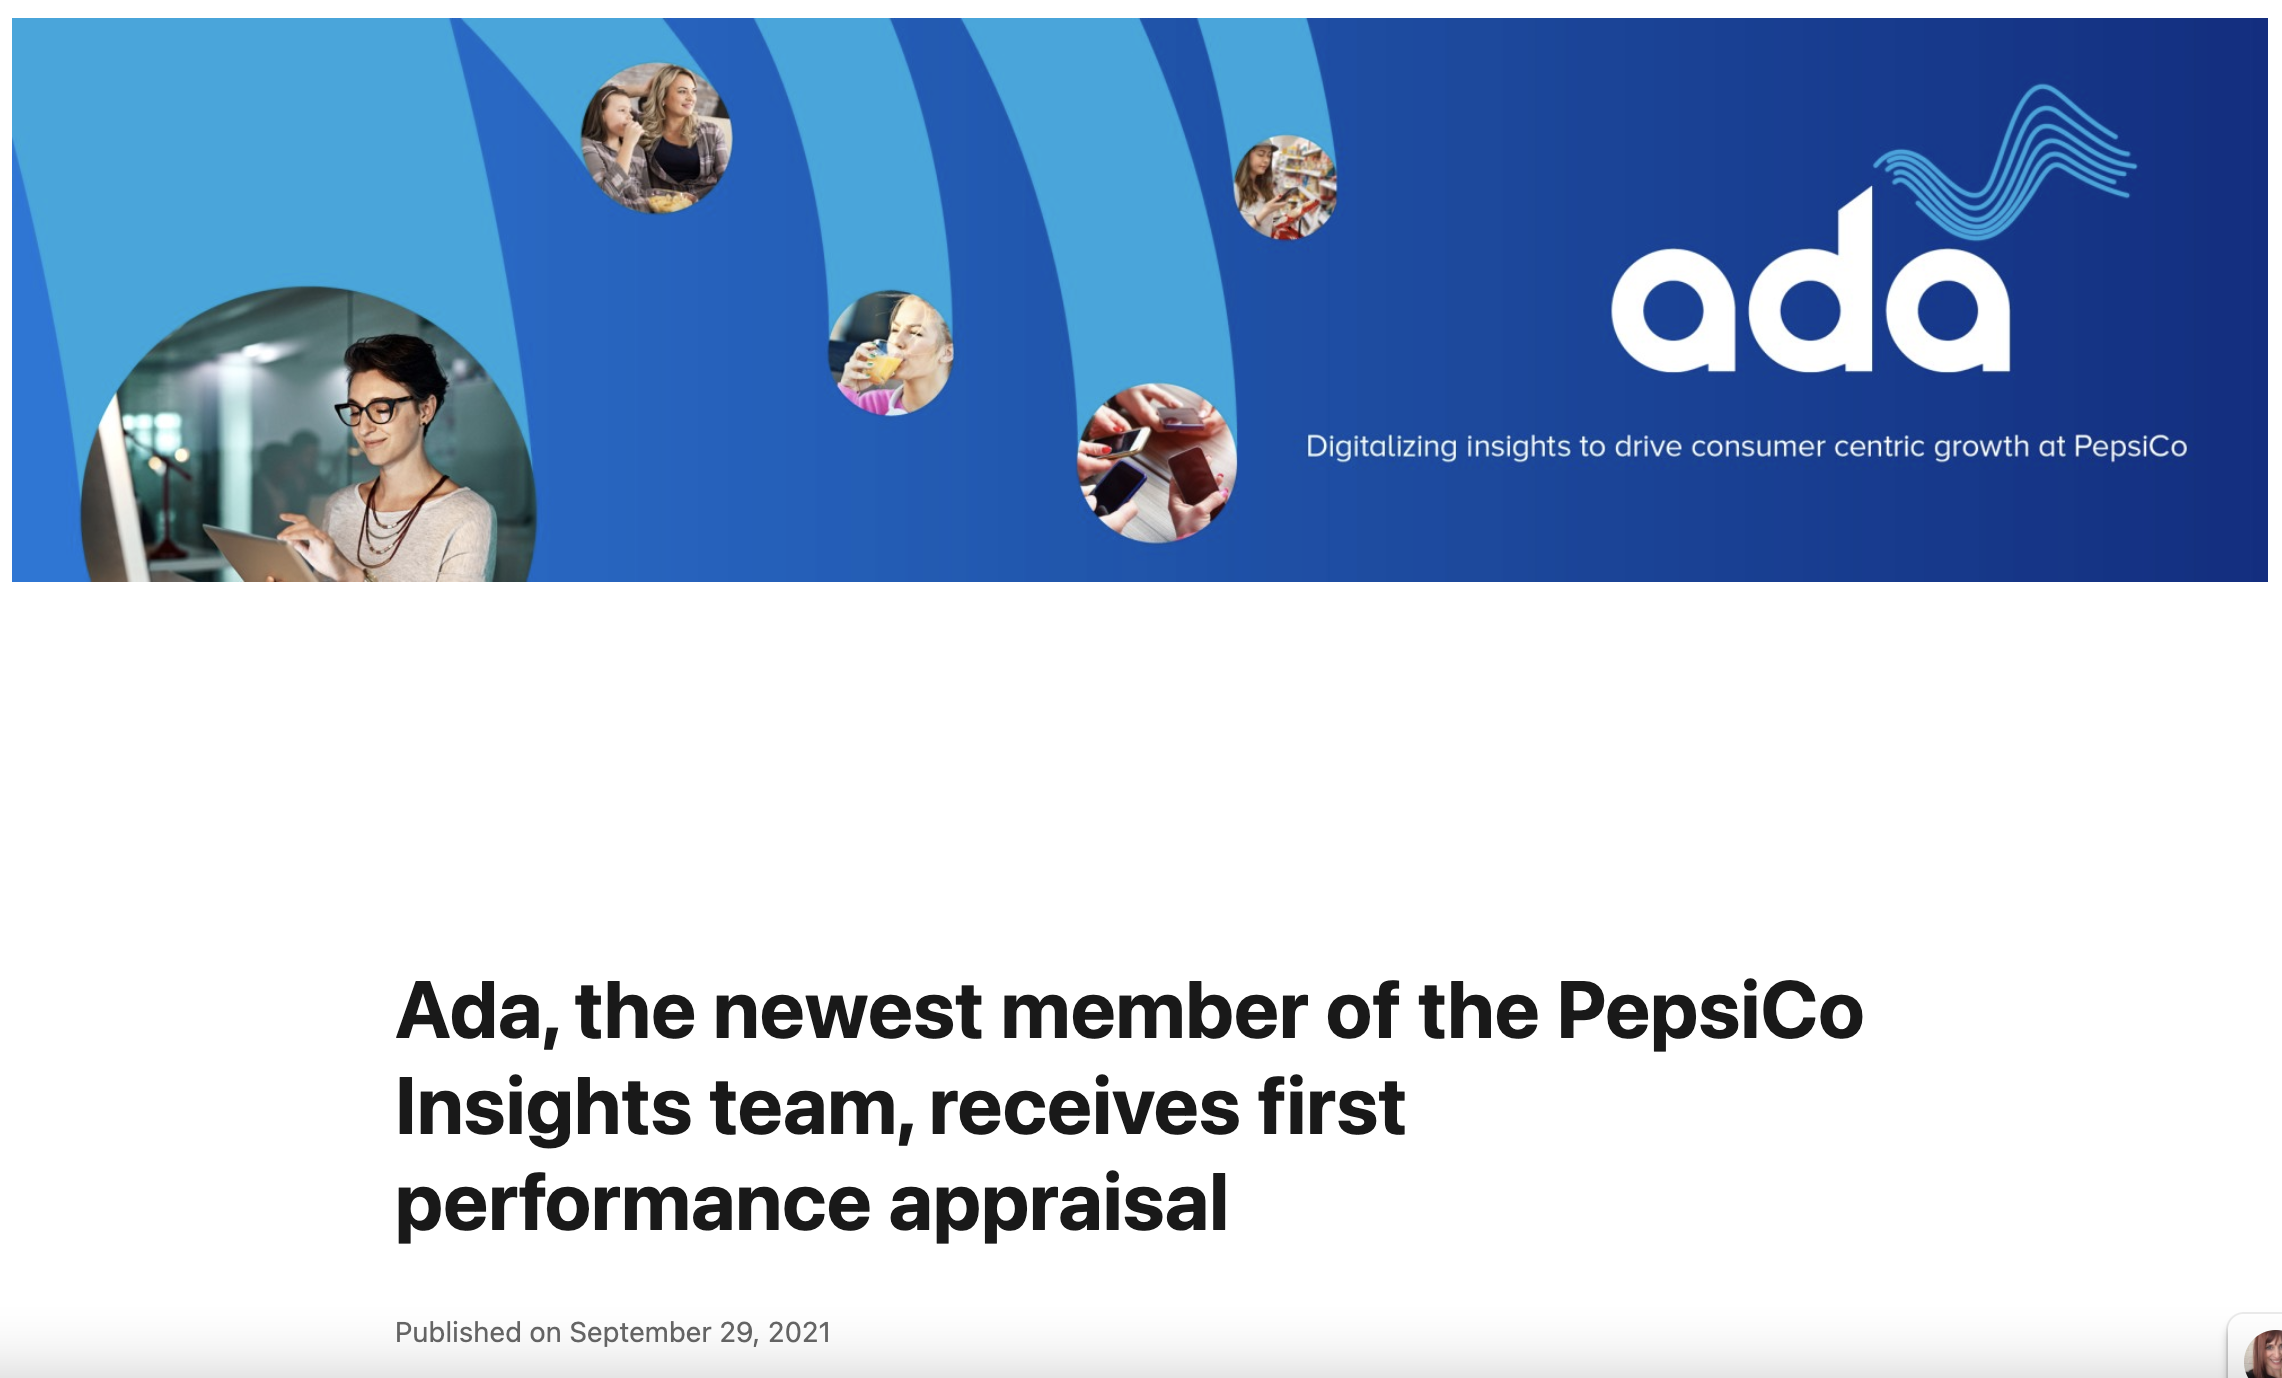 Ada's performance review